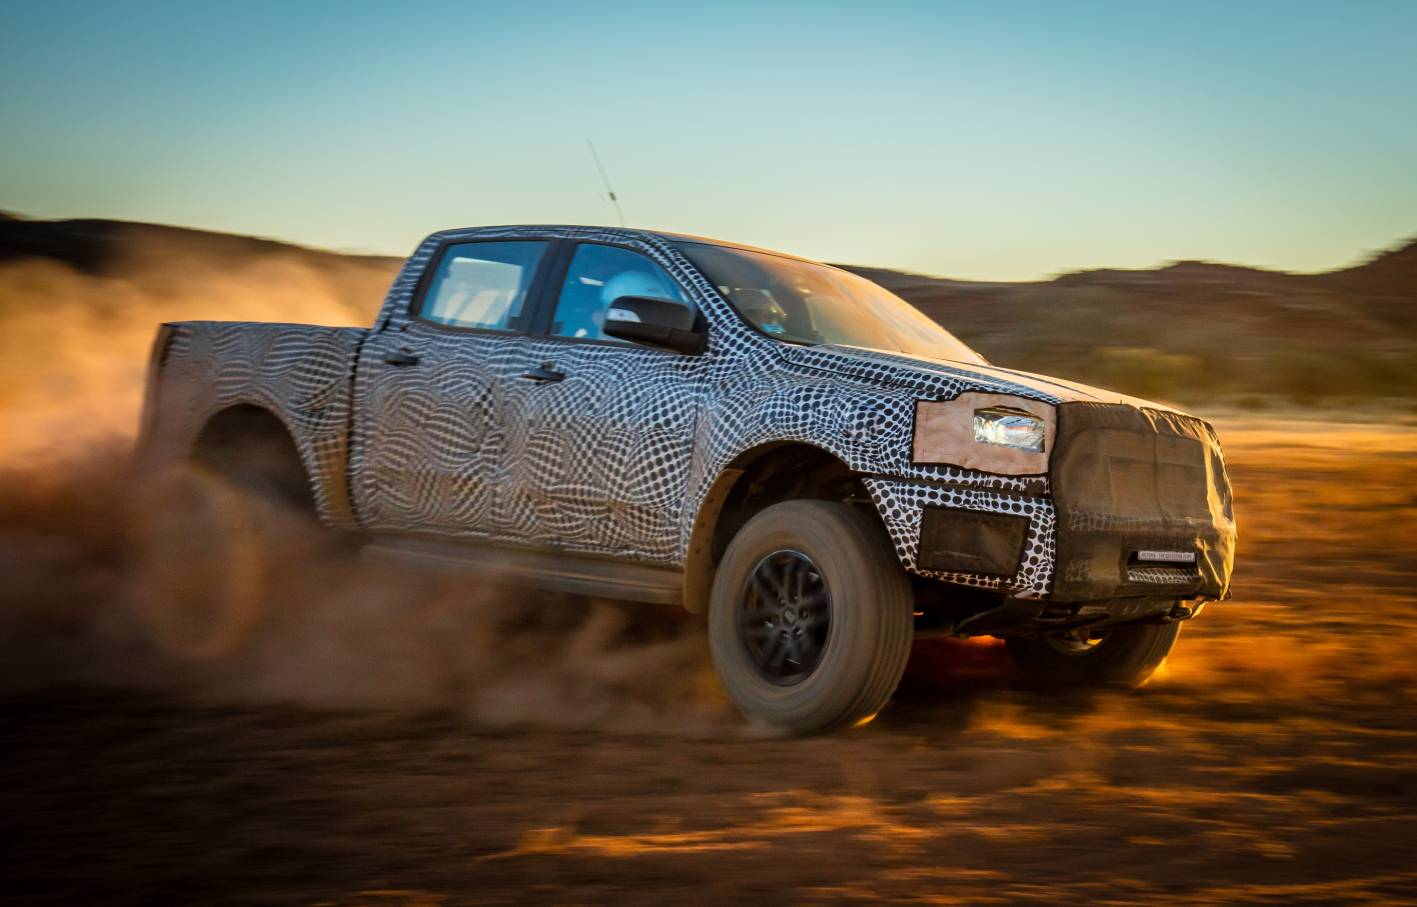 The Ford Ranger Raptor is coming to Australia